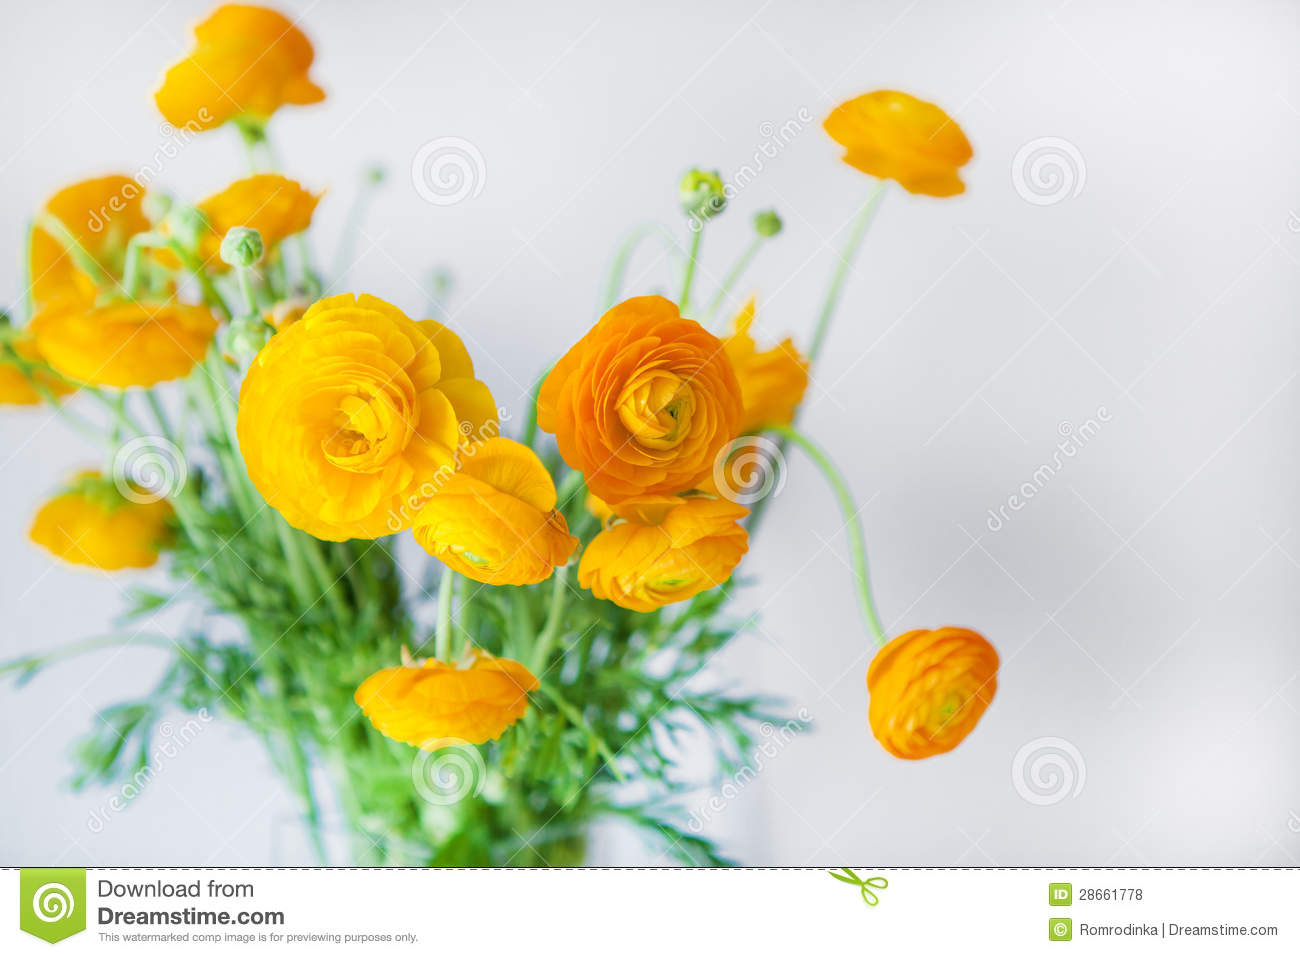 yellow ranunculus royalty free stock photos - image: 28661778